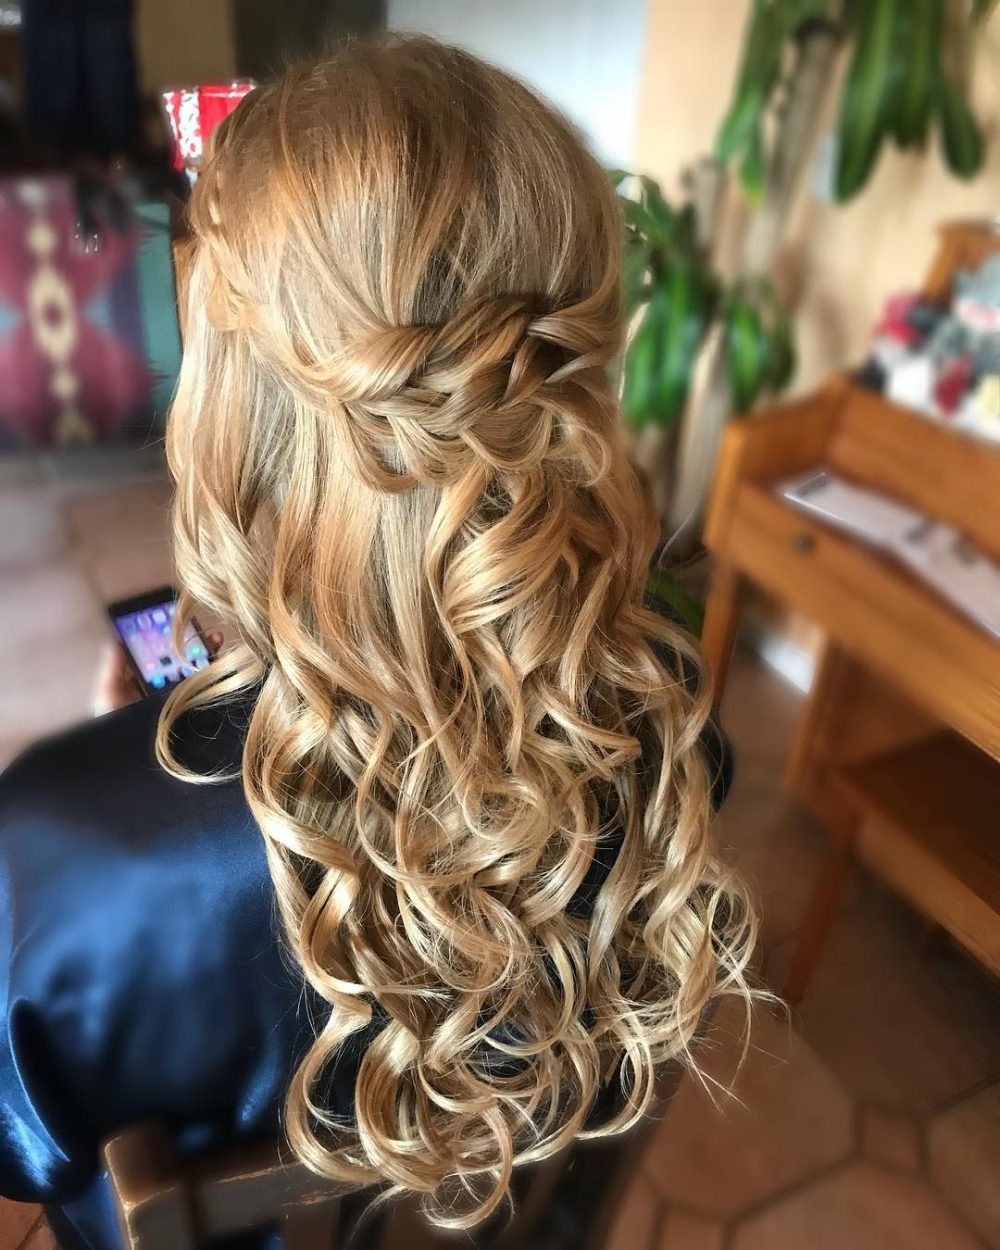 24 Gorgeous Wedding Hairstyles For Long Hair In 2019 In 2018 Bohemian Curls Bridal Hairstyles With Floral Clip (View 2 of 20)